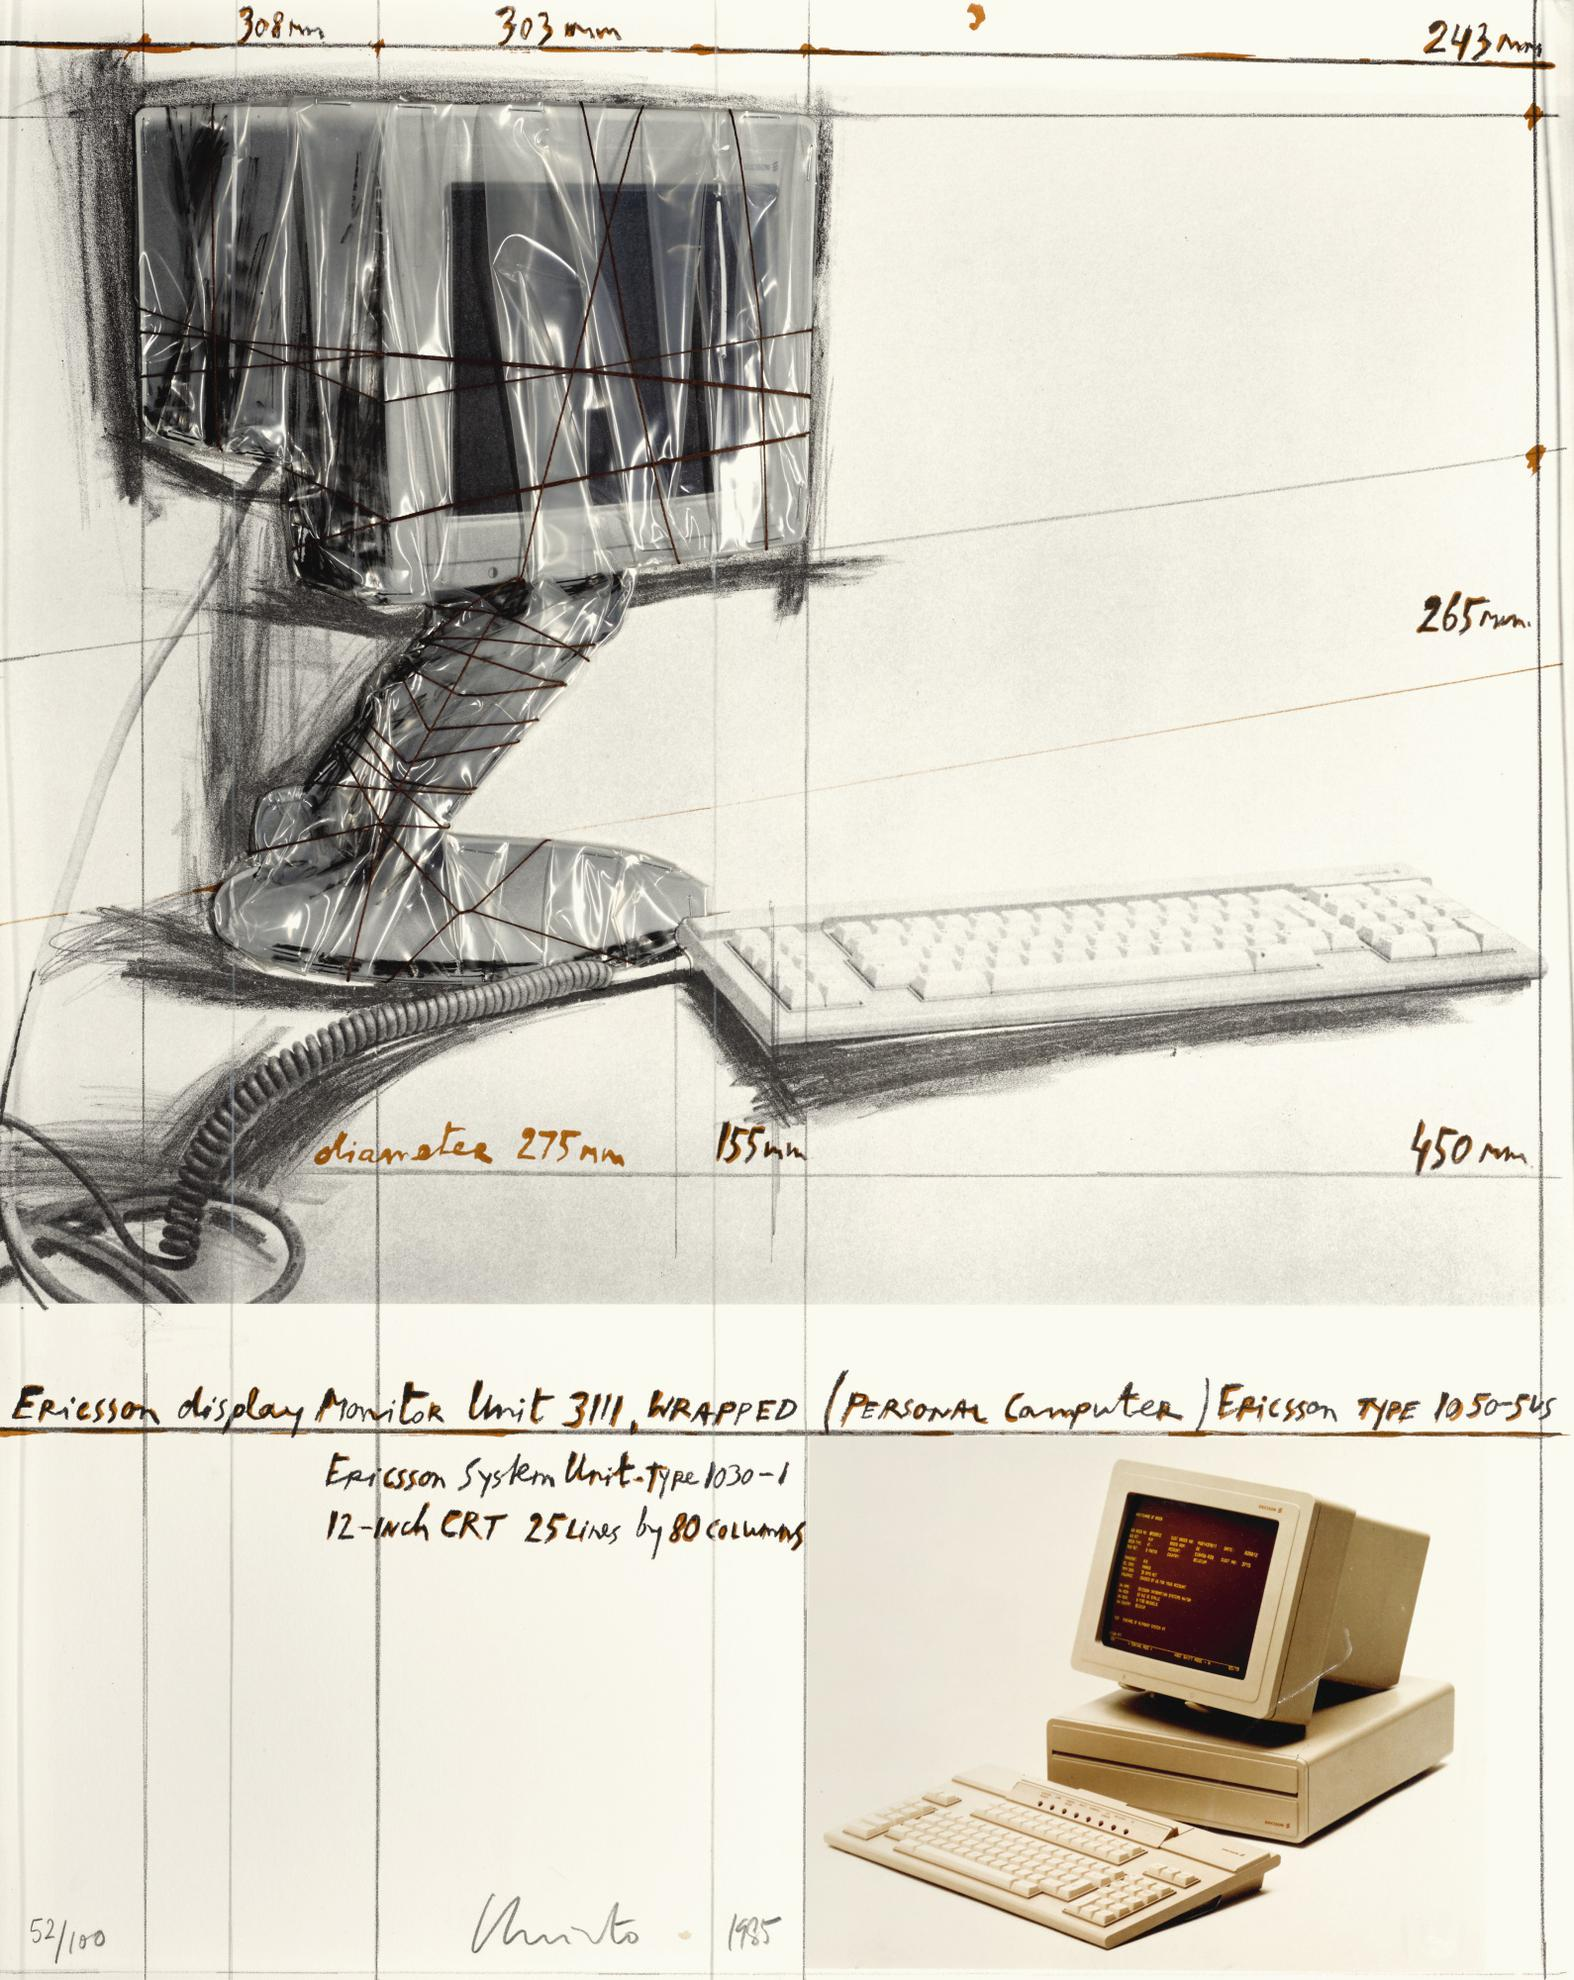 Christo and Jeanne-Claude-Ericsson Display Monitor Unit 3111, Wrapped, Project For Personal Computer-1985